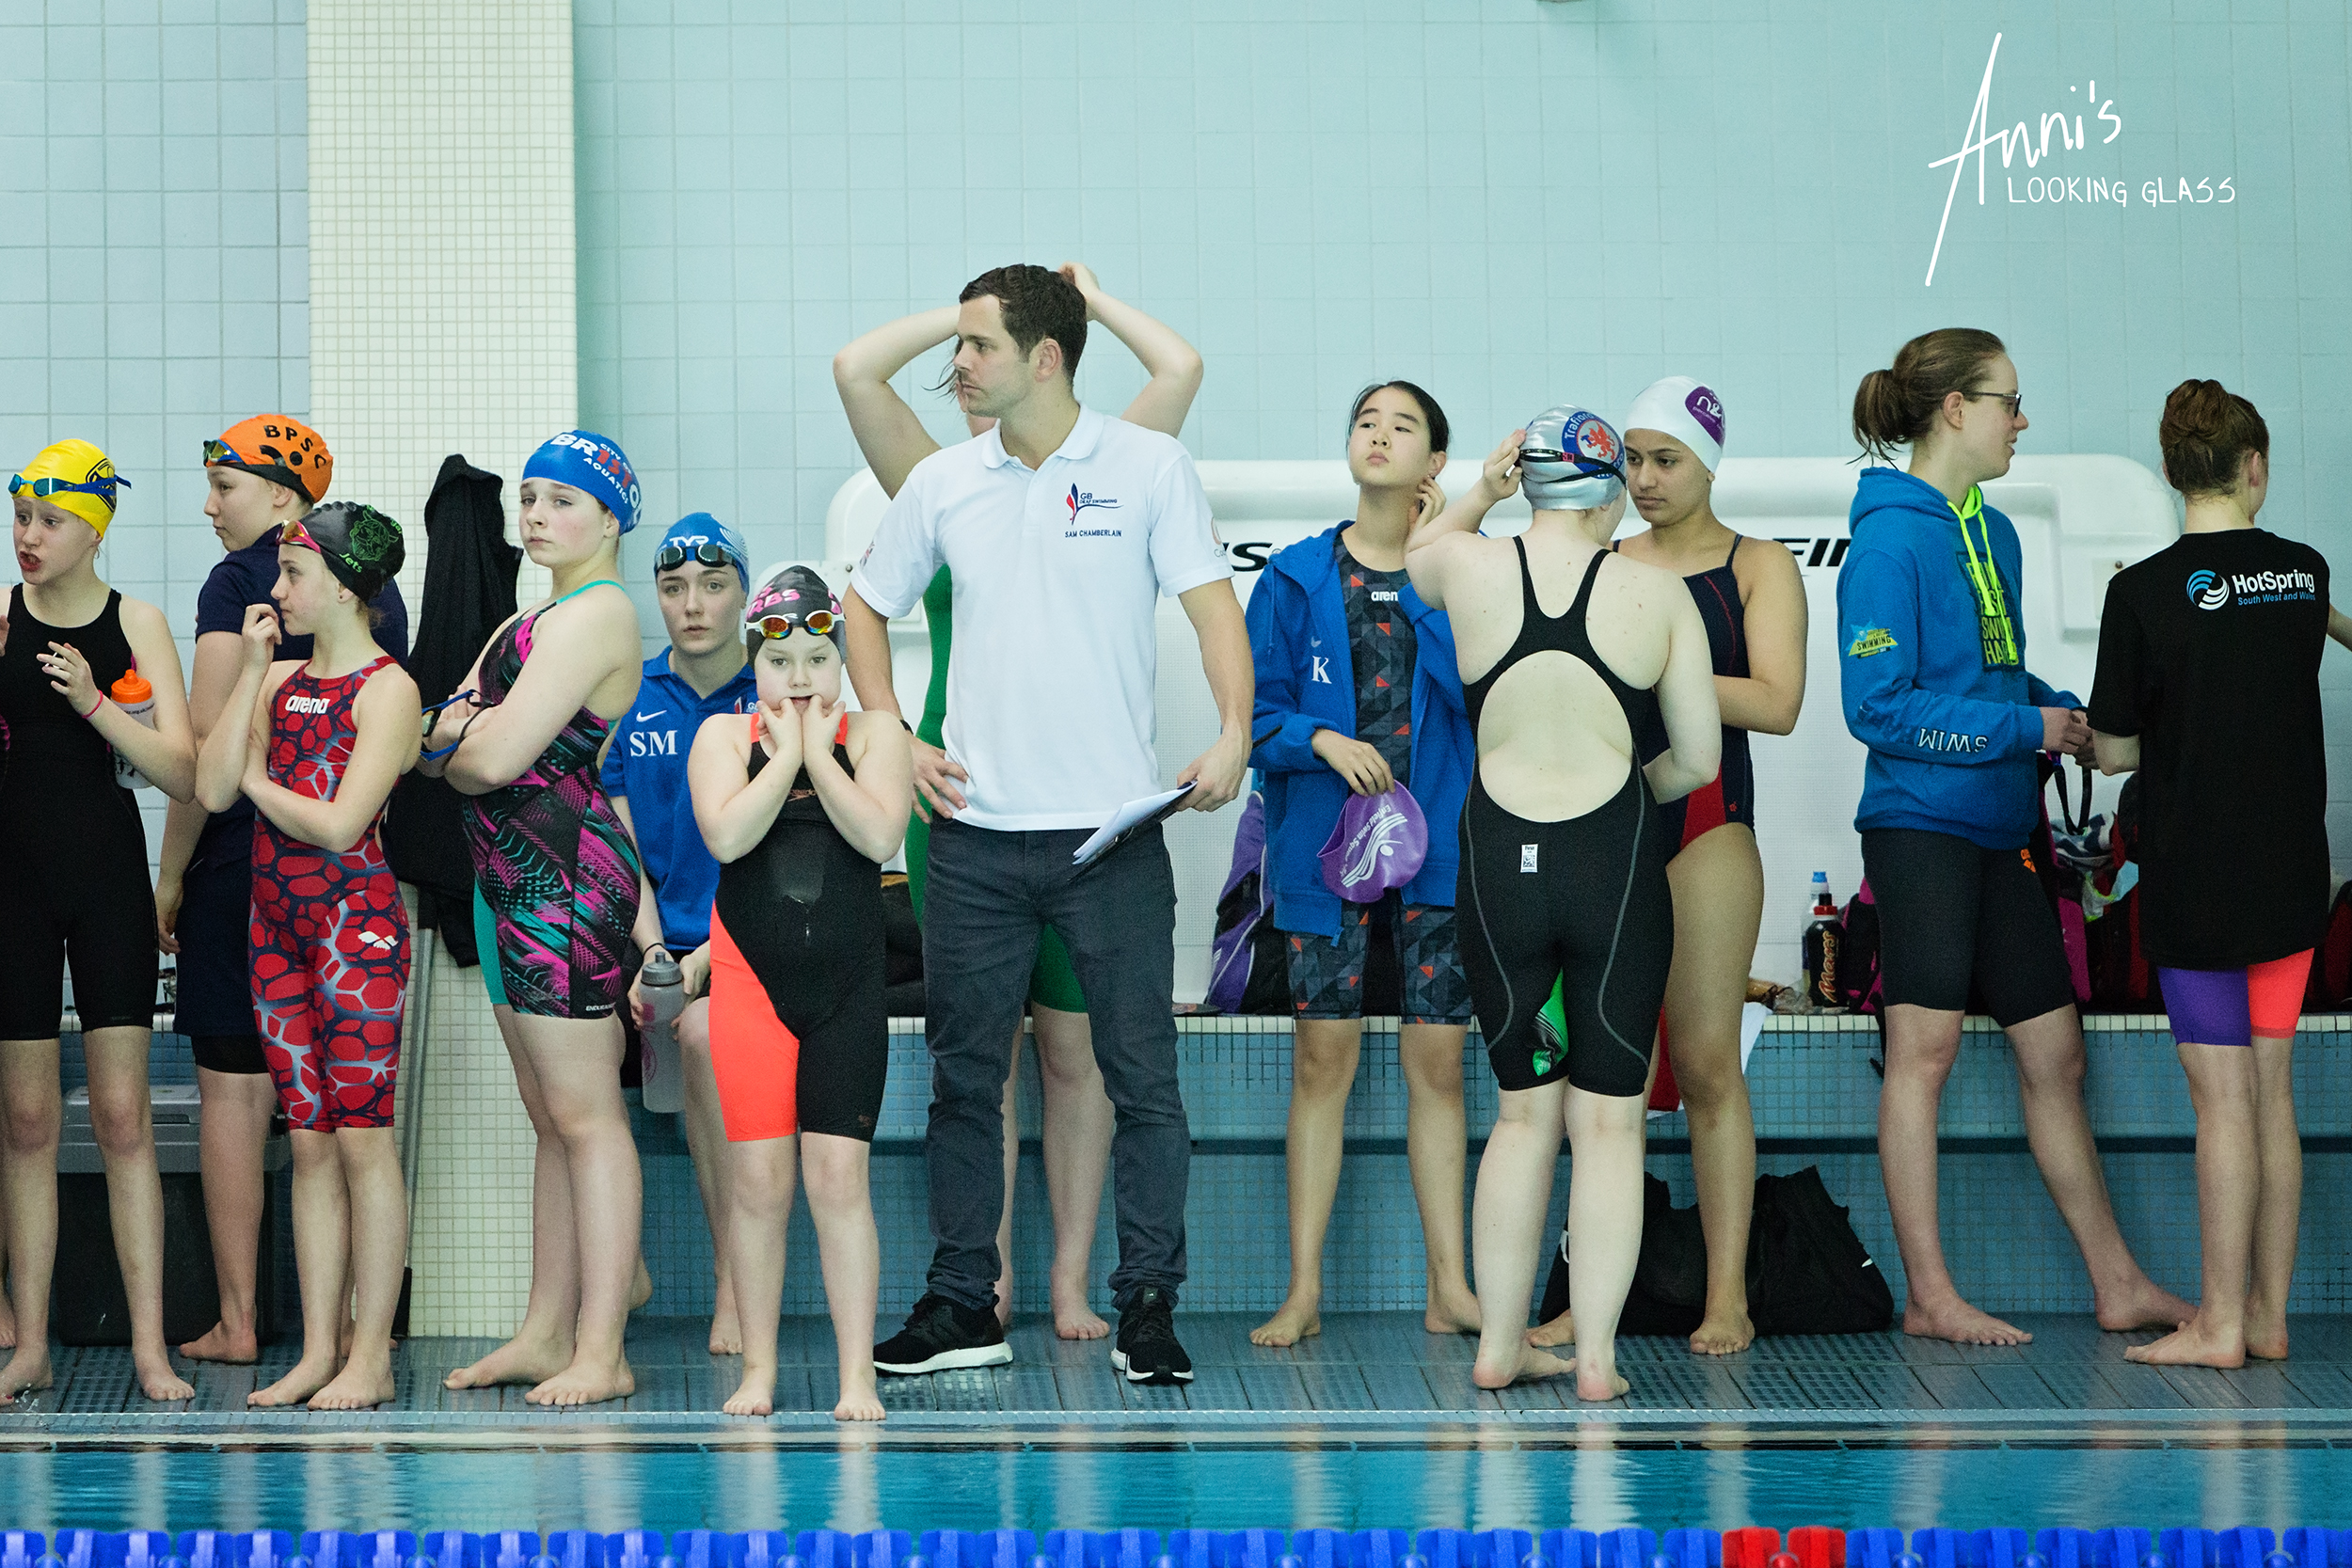 Loughborough Photographer: Swimmers waiting between races at Loughborough University's pool. 24th March 2018